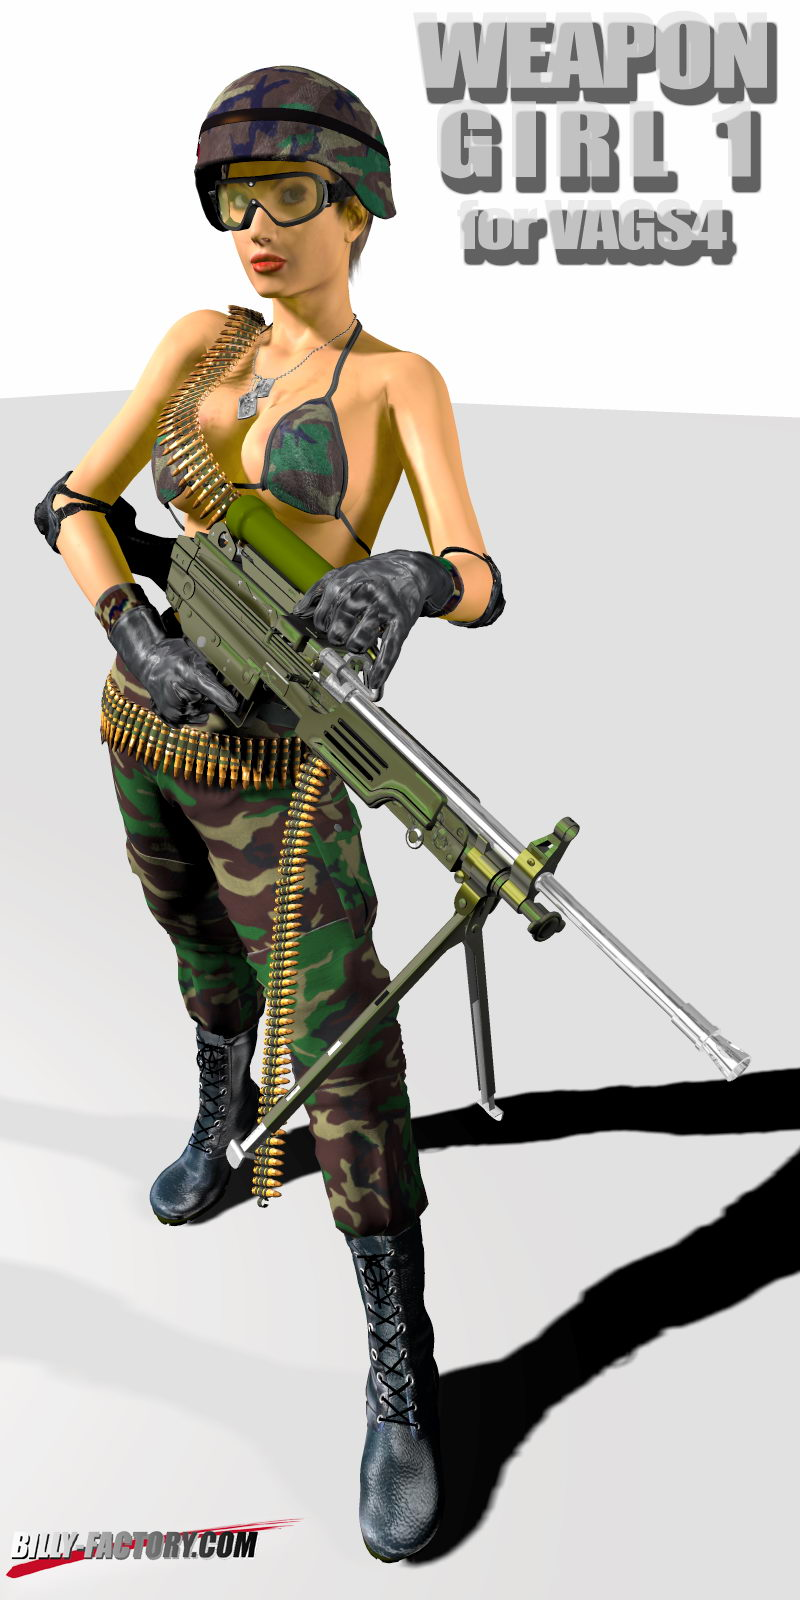 WEAPON GIRL for VAGS4